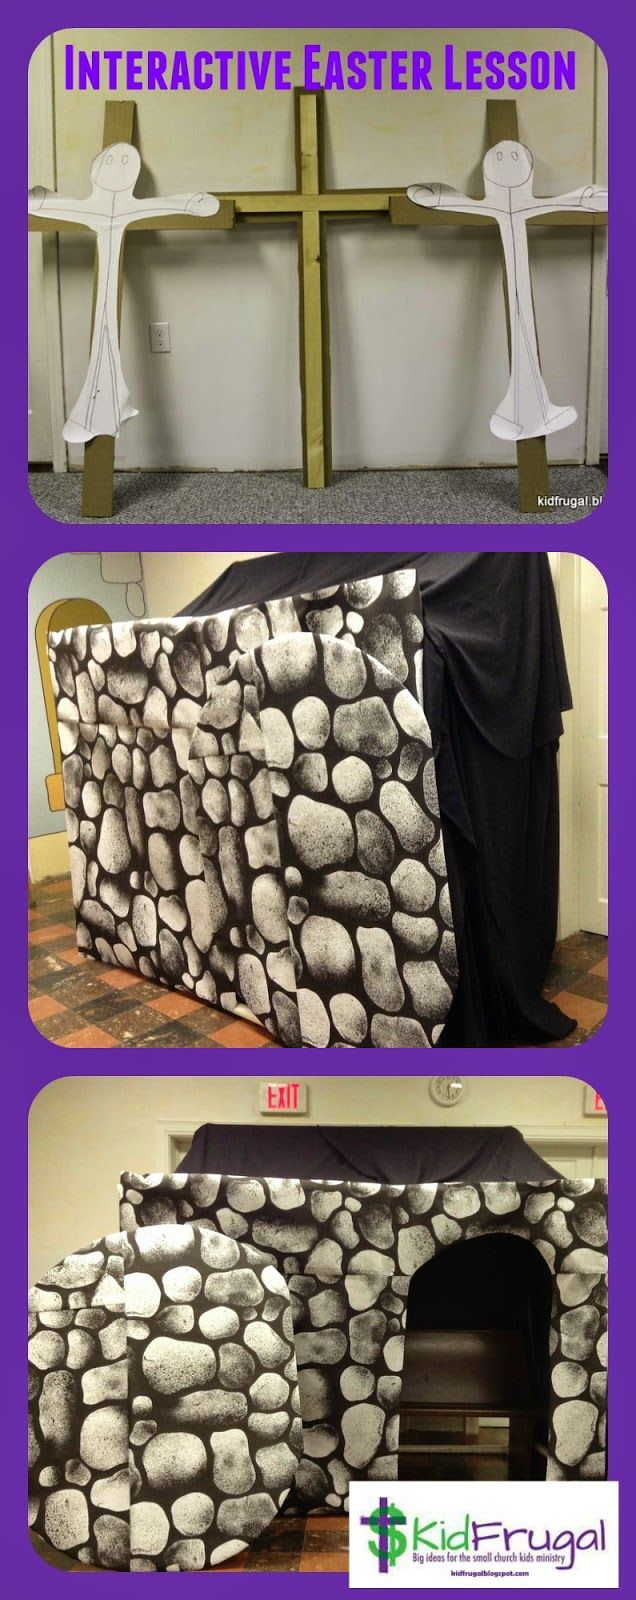 Kidfrugal: The Empty Tomb - An Interactive Easter Lesson. DIY cave or tomb and interactive Easter drama for small groups.